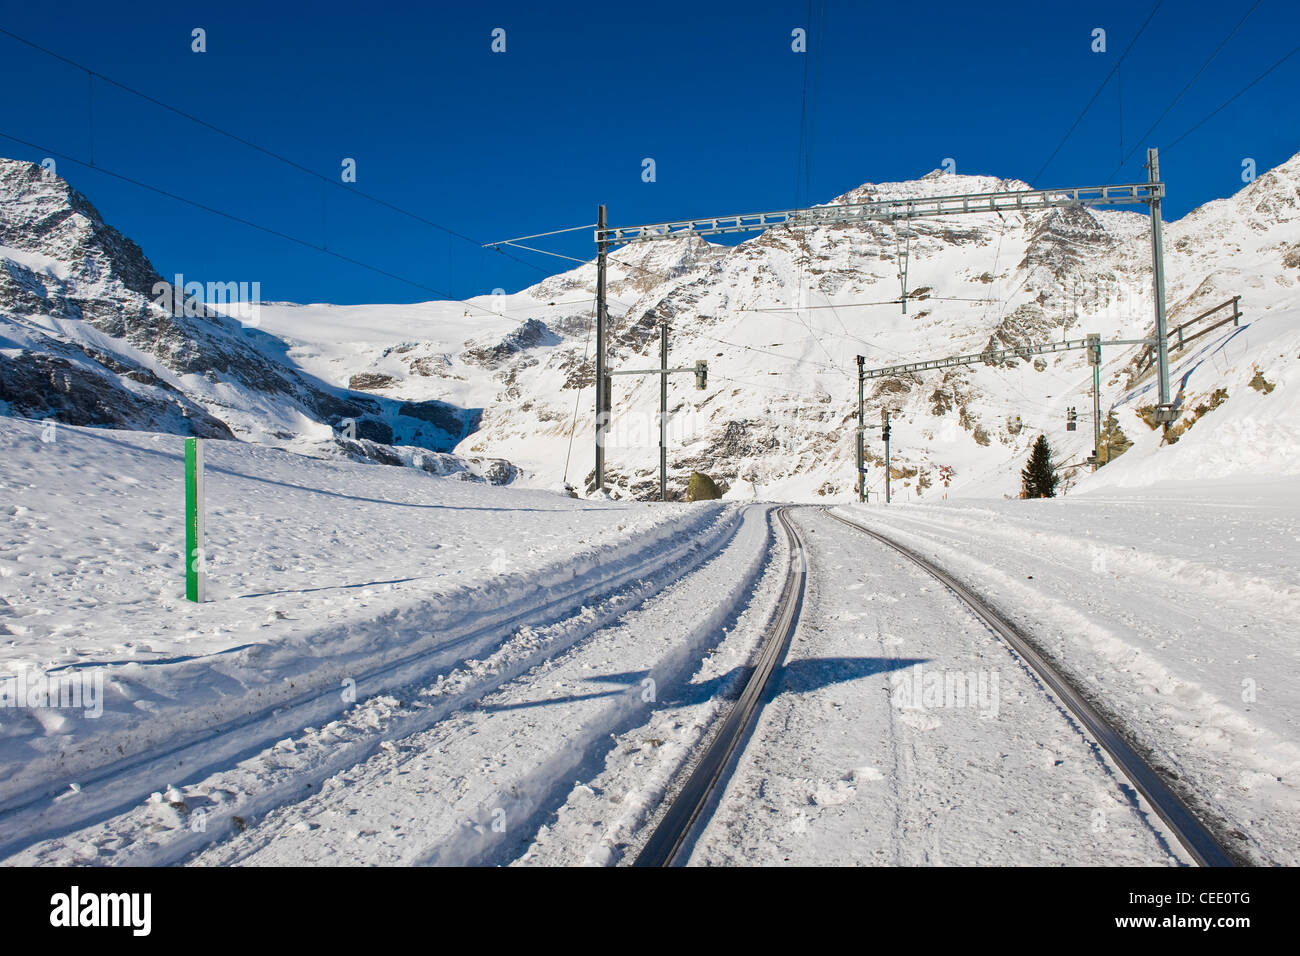 Alp Grum, Bernina express, Switzerland - Stock Image